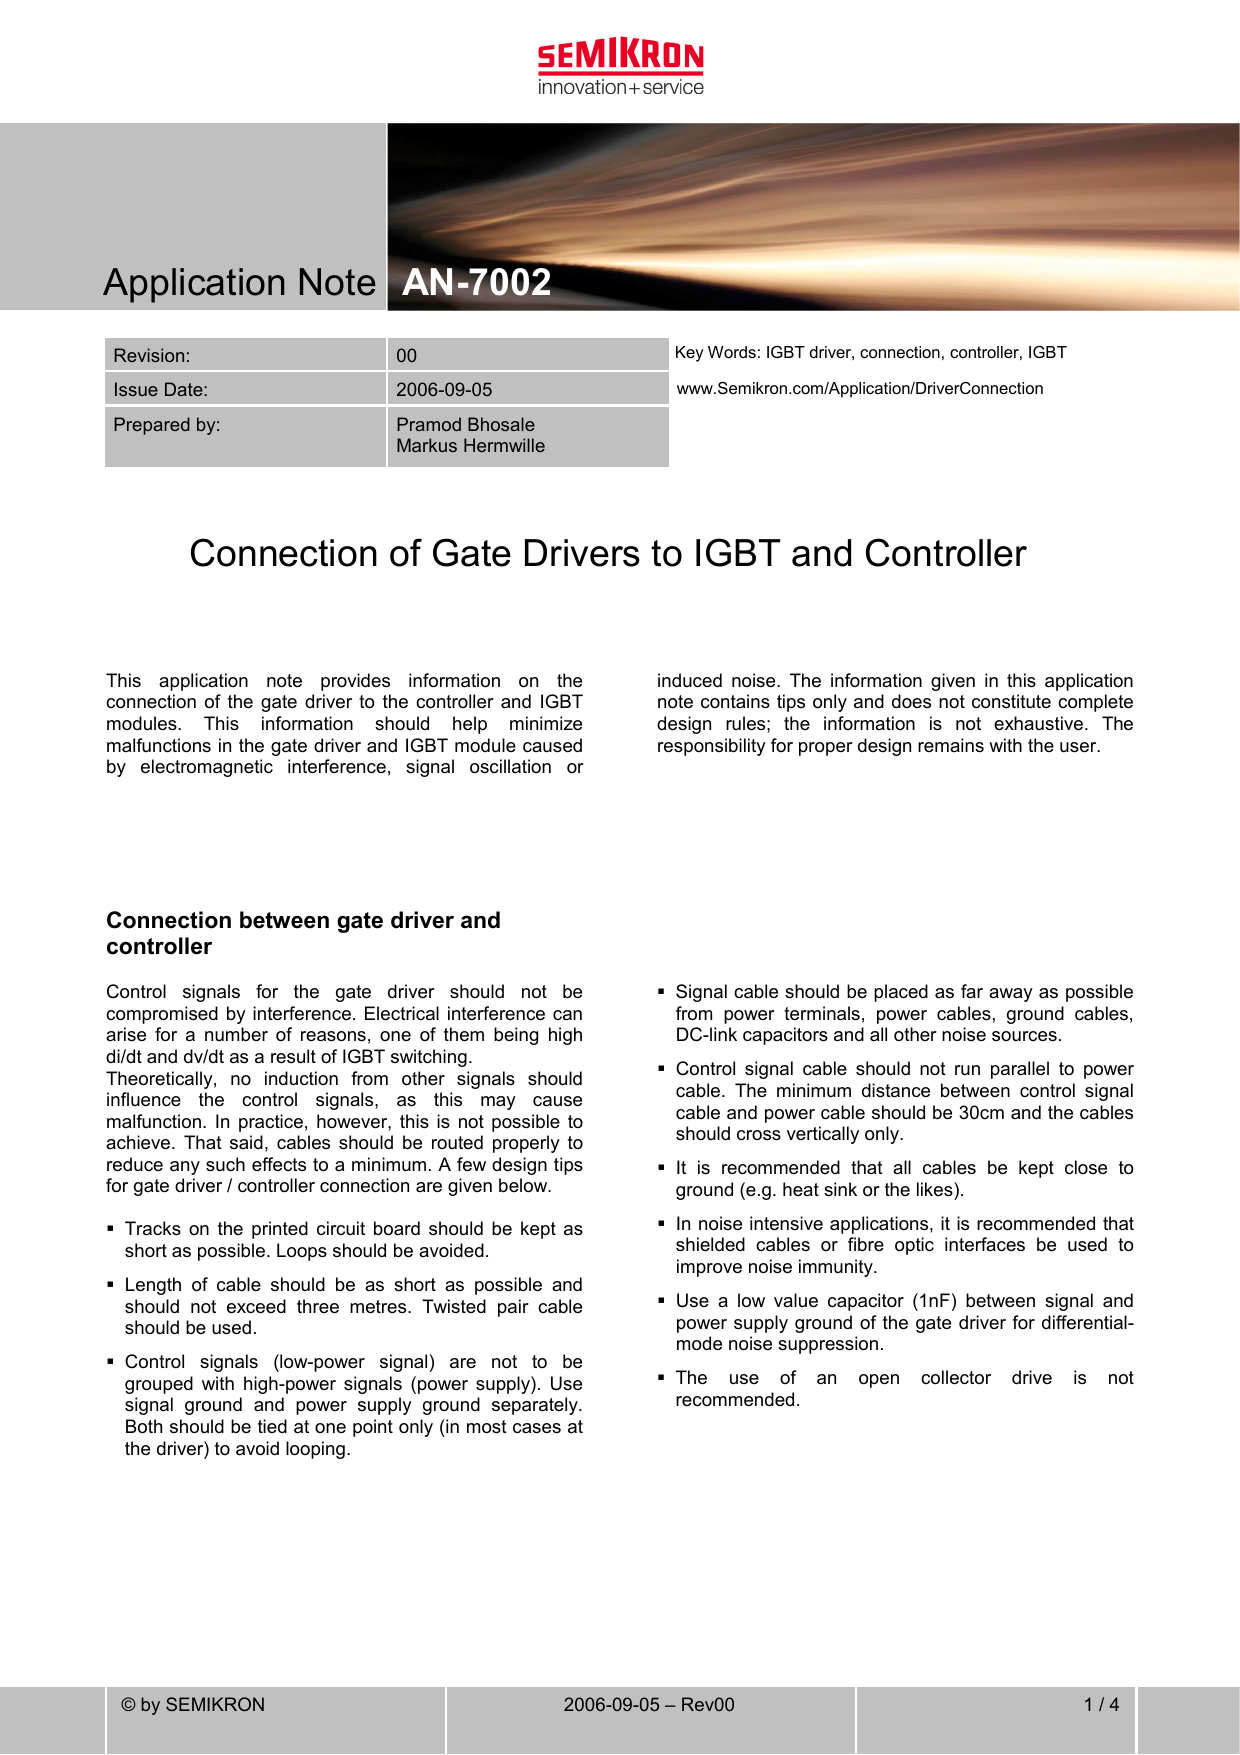 SEMIKRON Application-Note Connection of Gate Drivers to IGBT